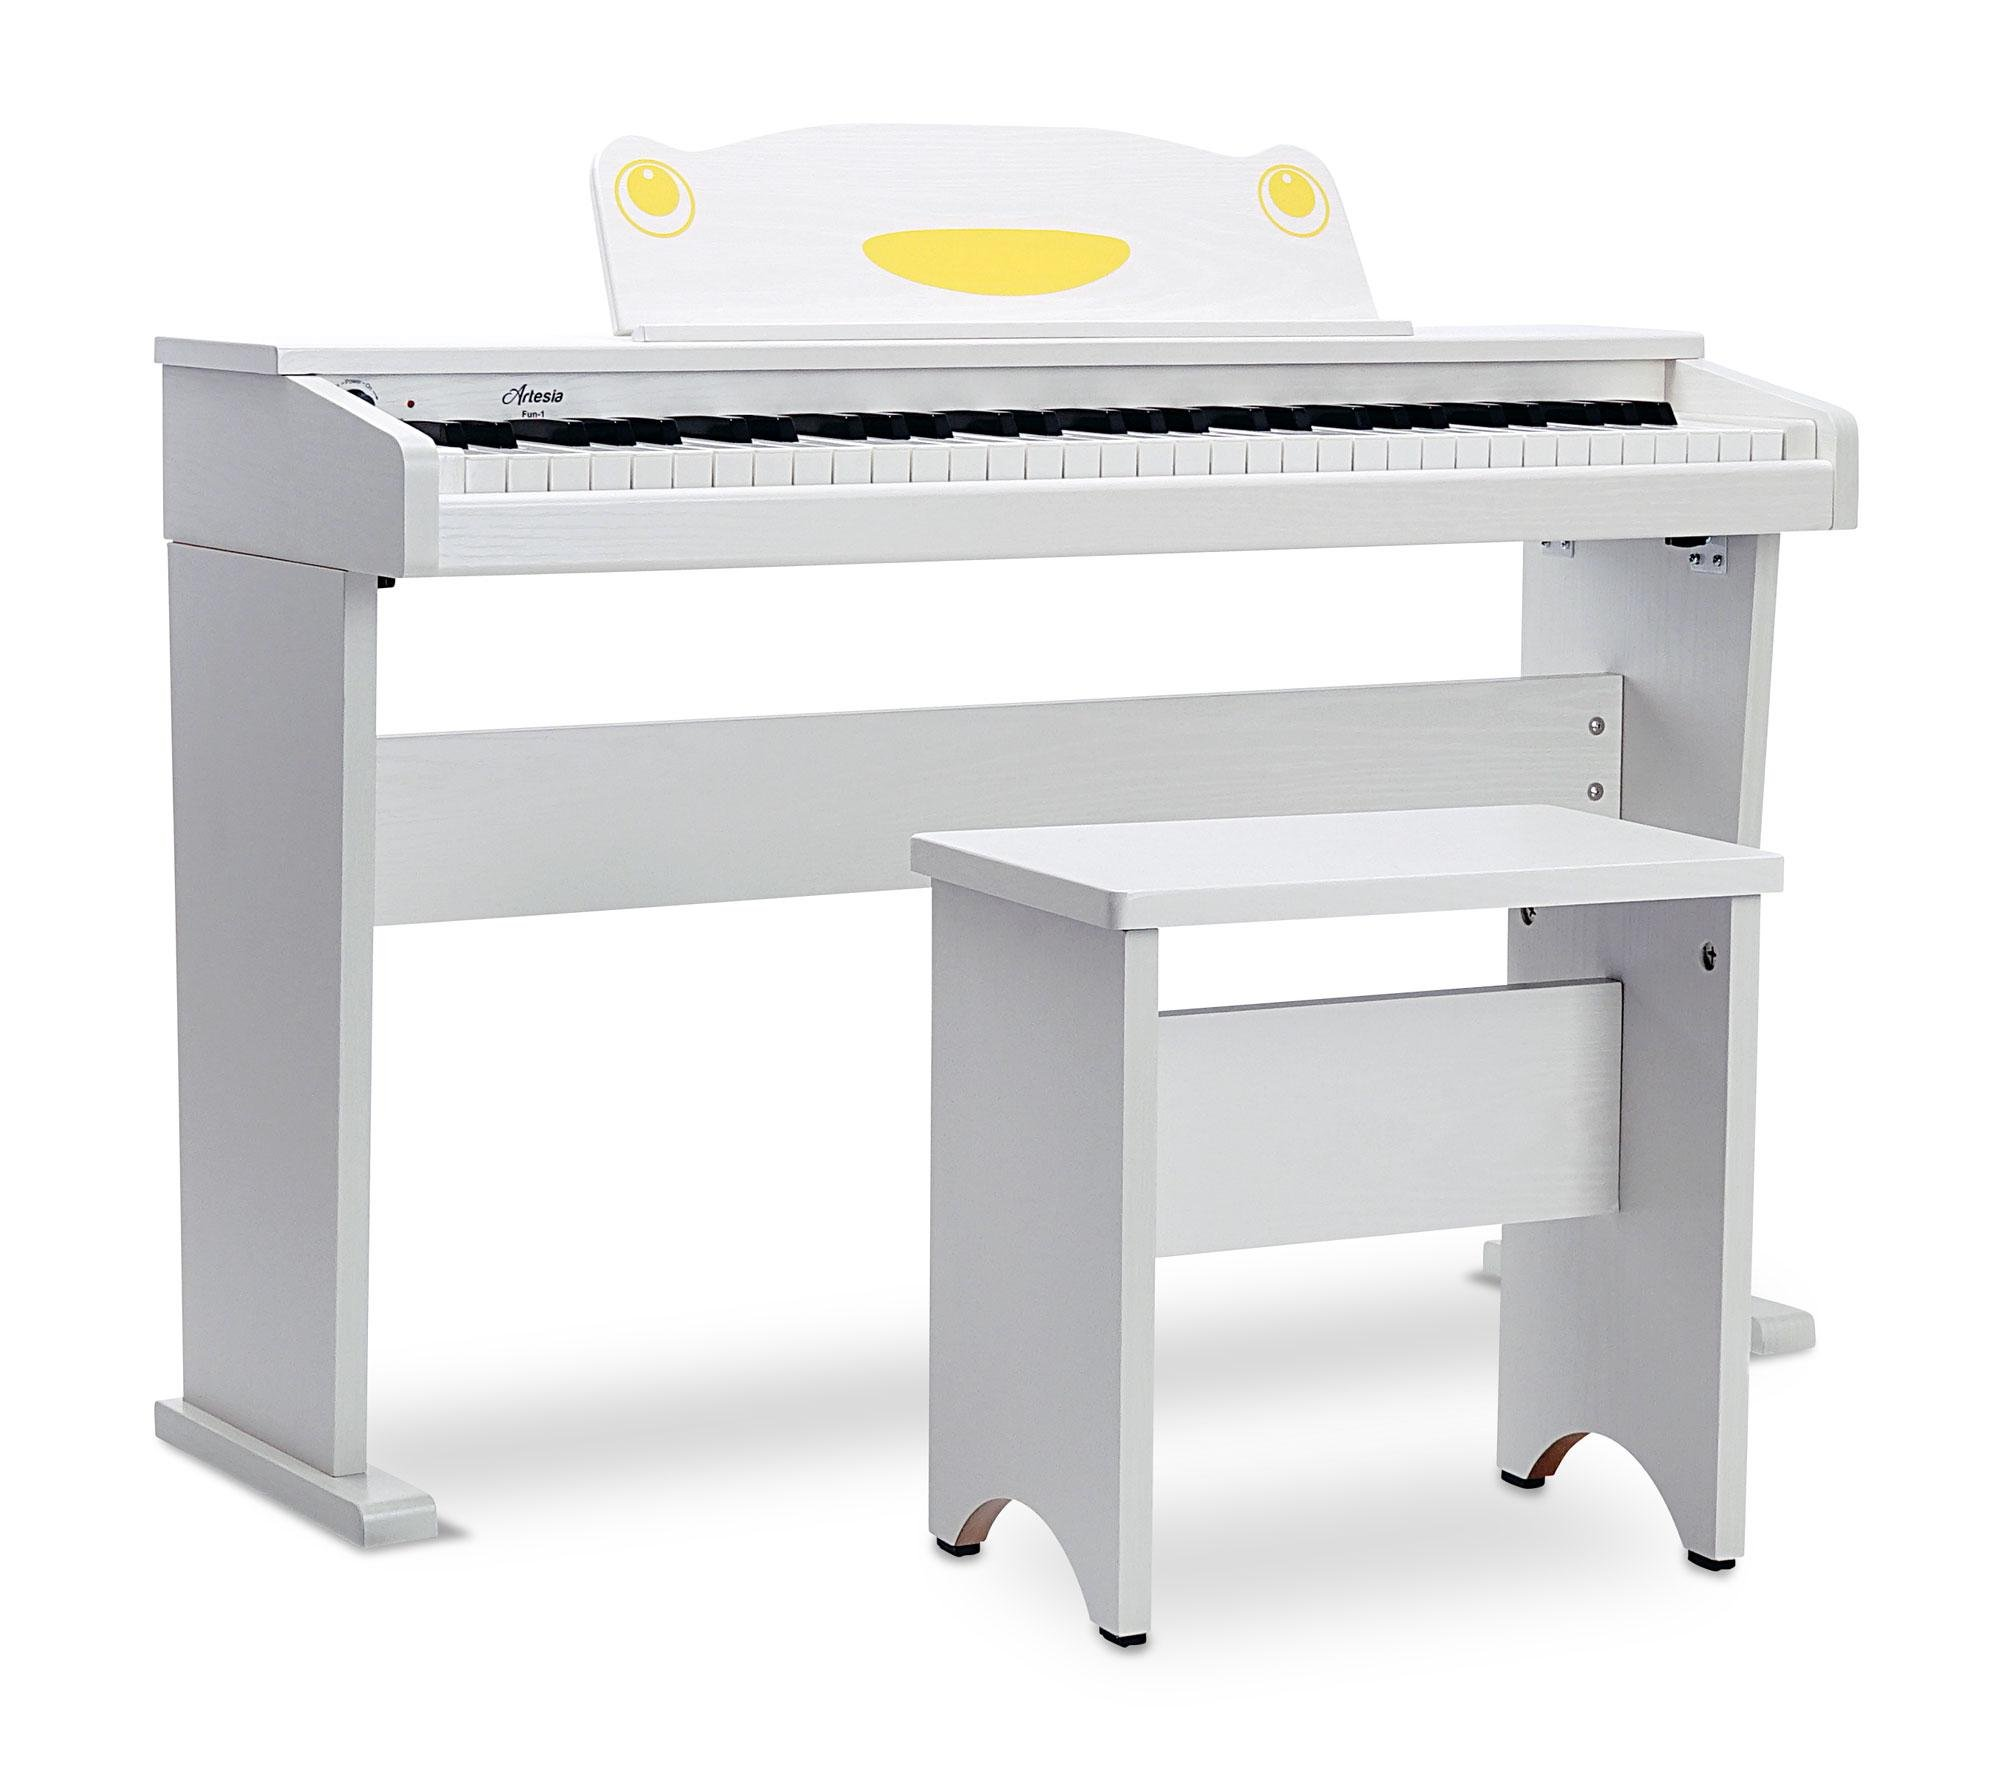 Artesia FUN-1 61-Key Childrens Digital Piano with Bench and Headphones - White by Artesia